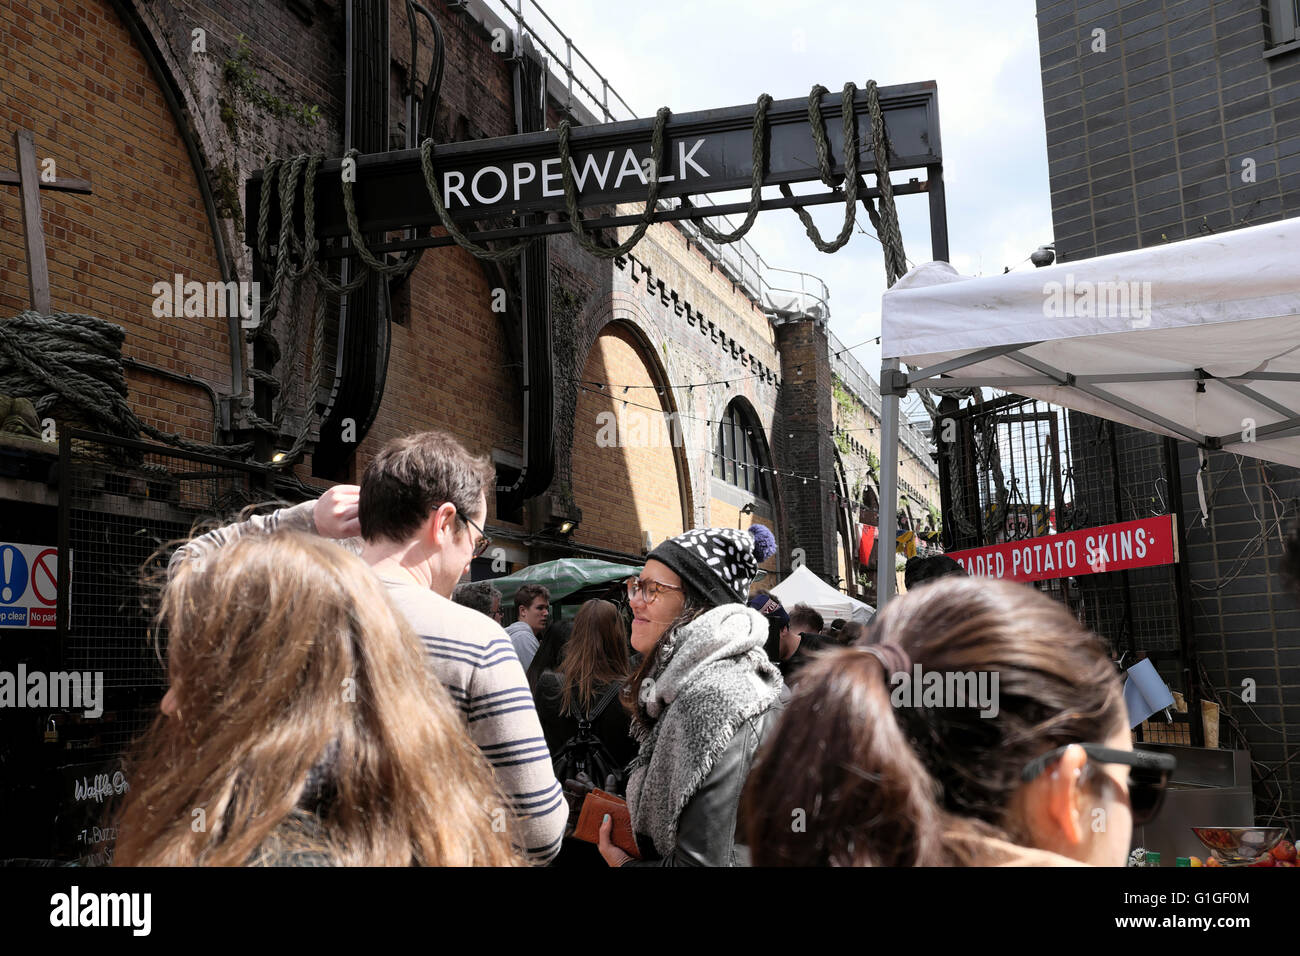 Artisan ROPEWALK street food market under the railway arches Maltby Street Bermondsey London SE1  KATHY DEWITT - Stock Image